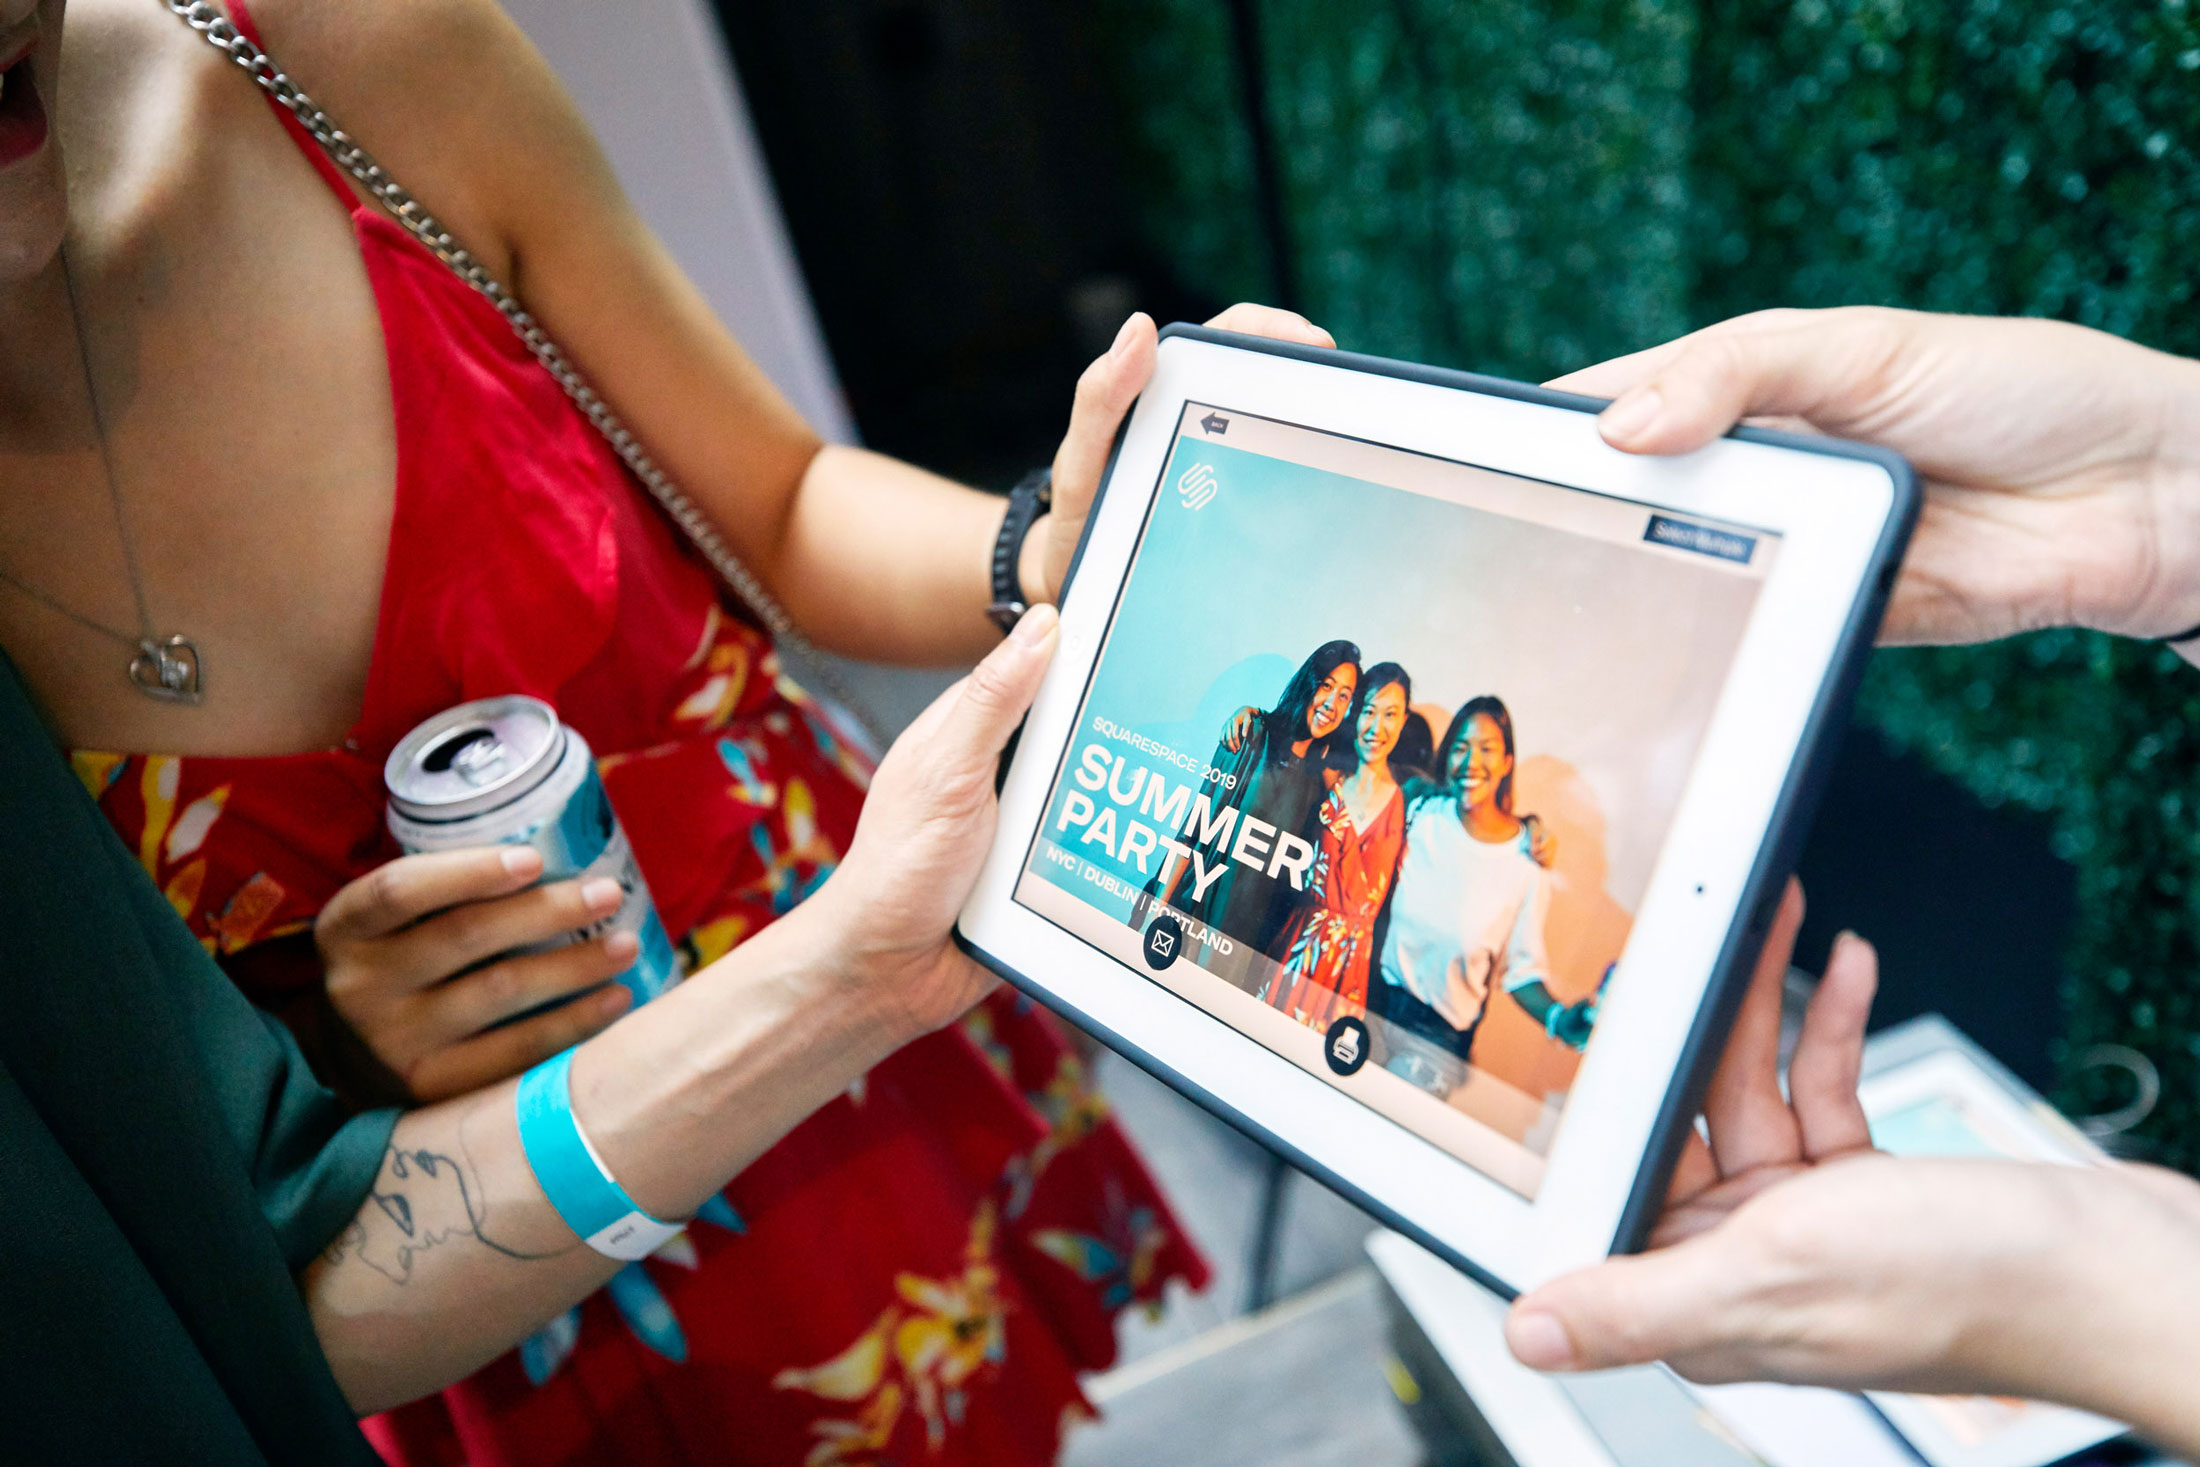 SquareSpace_Summer_Party-2019.jpg